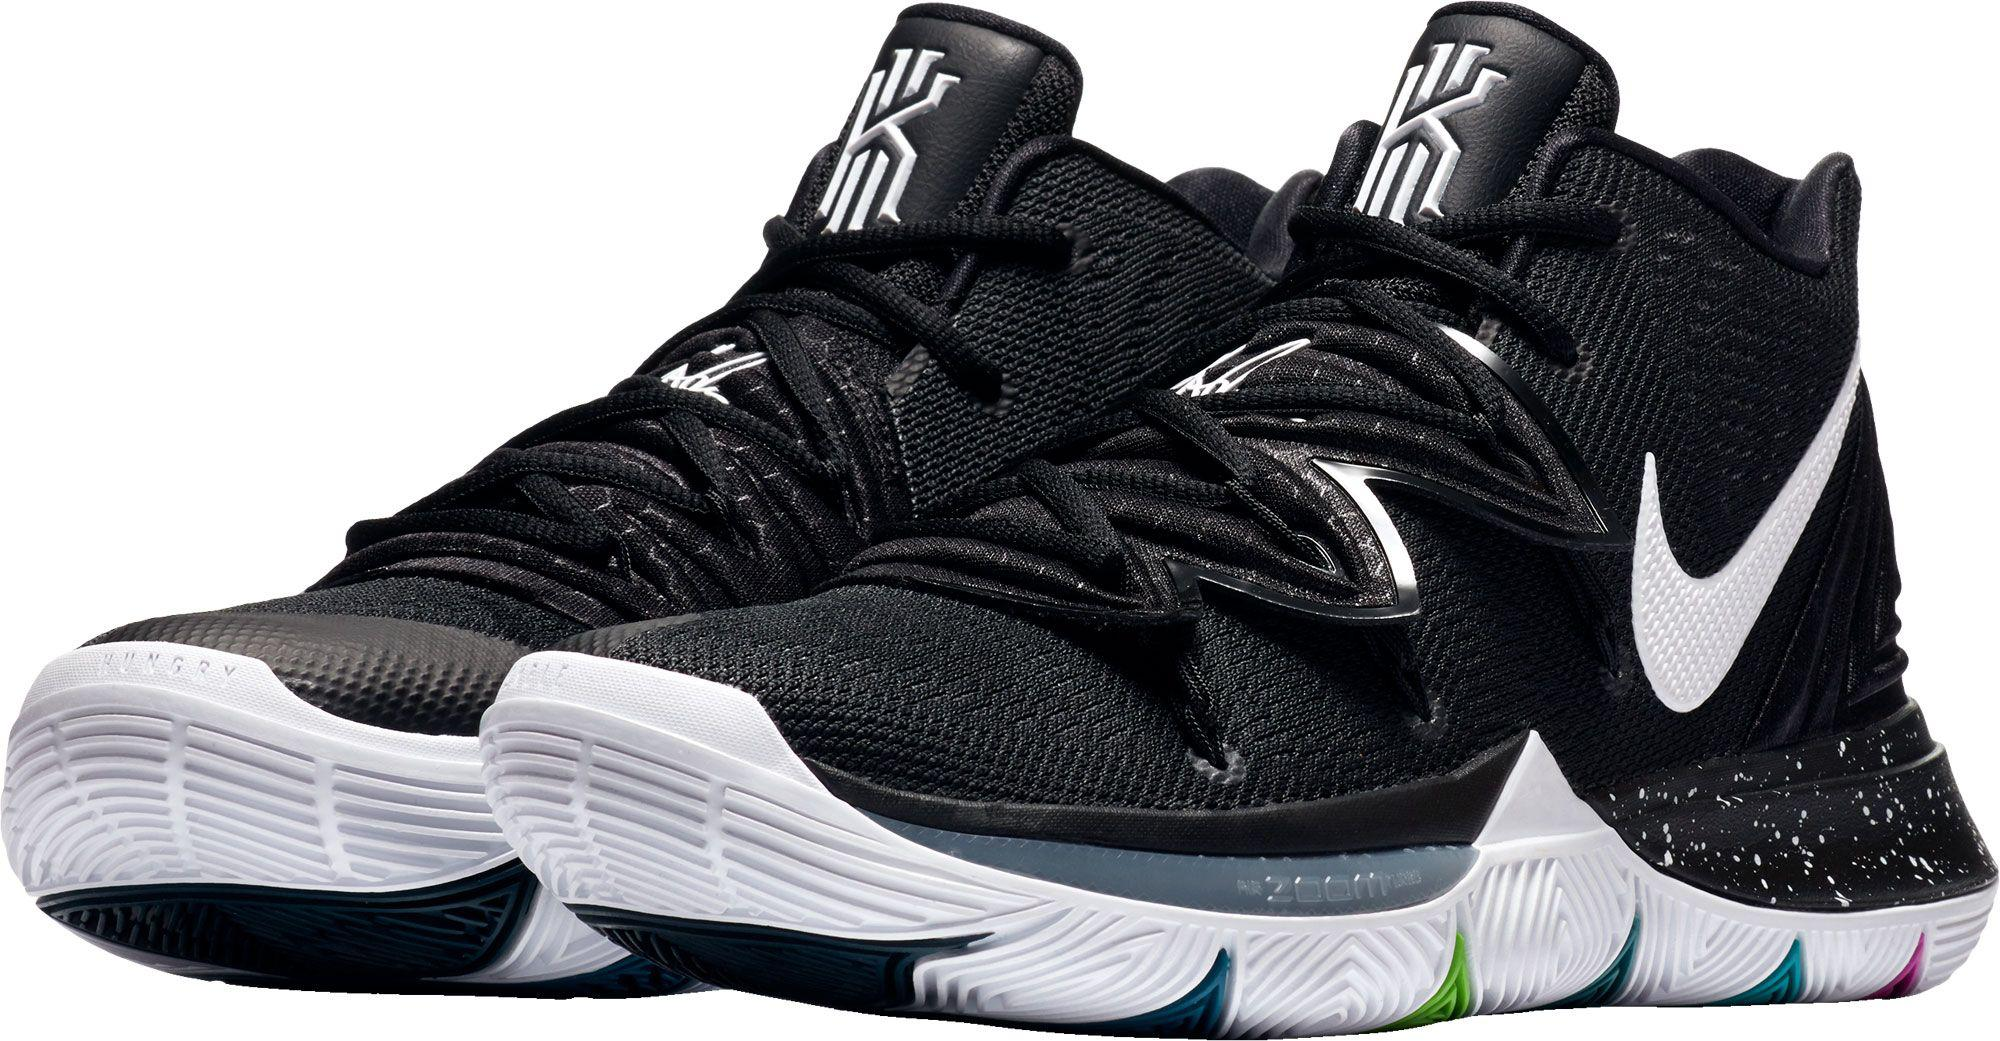 Nike Kyrie 5 Basketball Shoes in Black